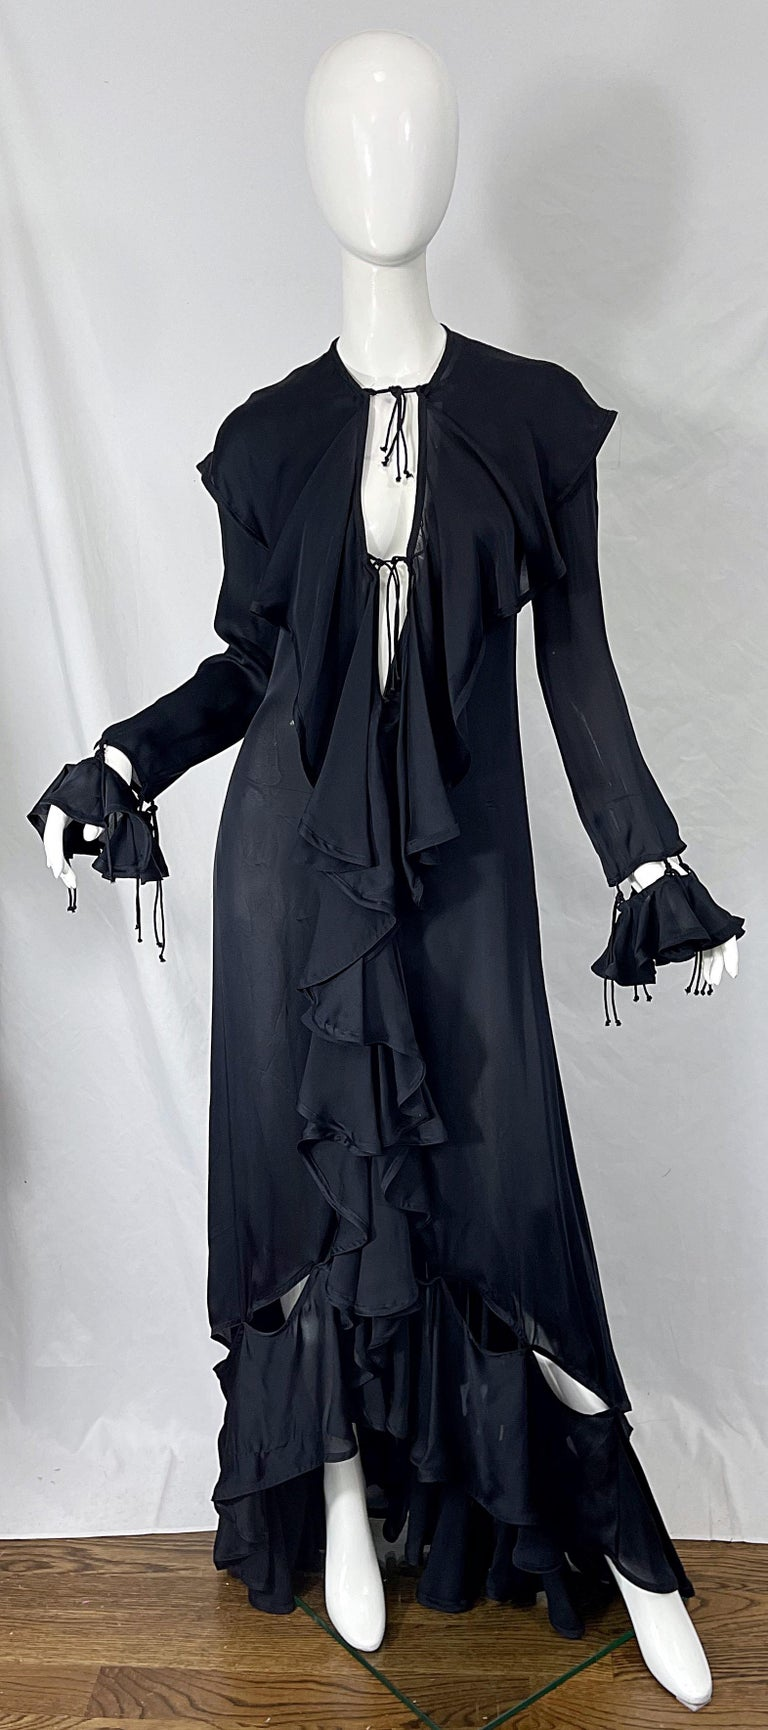 Yves Saint Laurent by Tom Ford Fall 2003 Runway Black Silk Chiffon Gown Size 38 For Sale 4